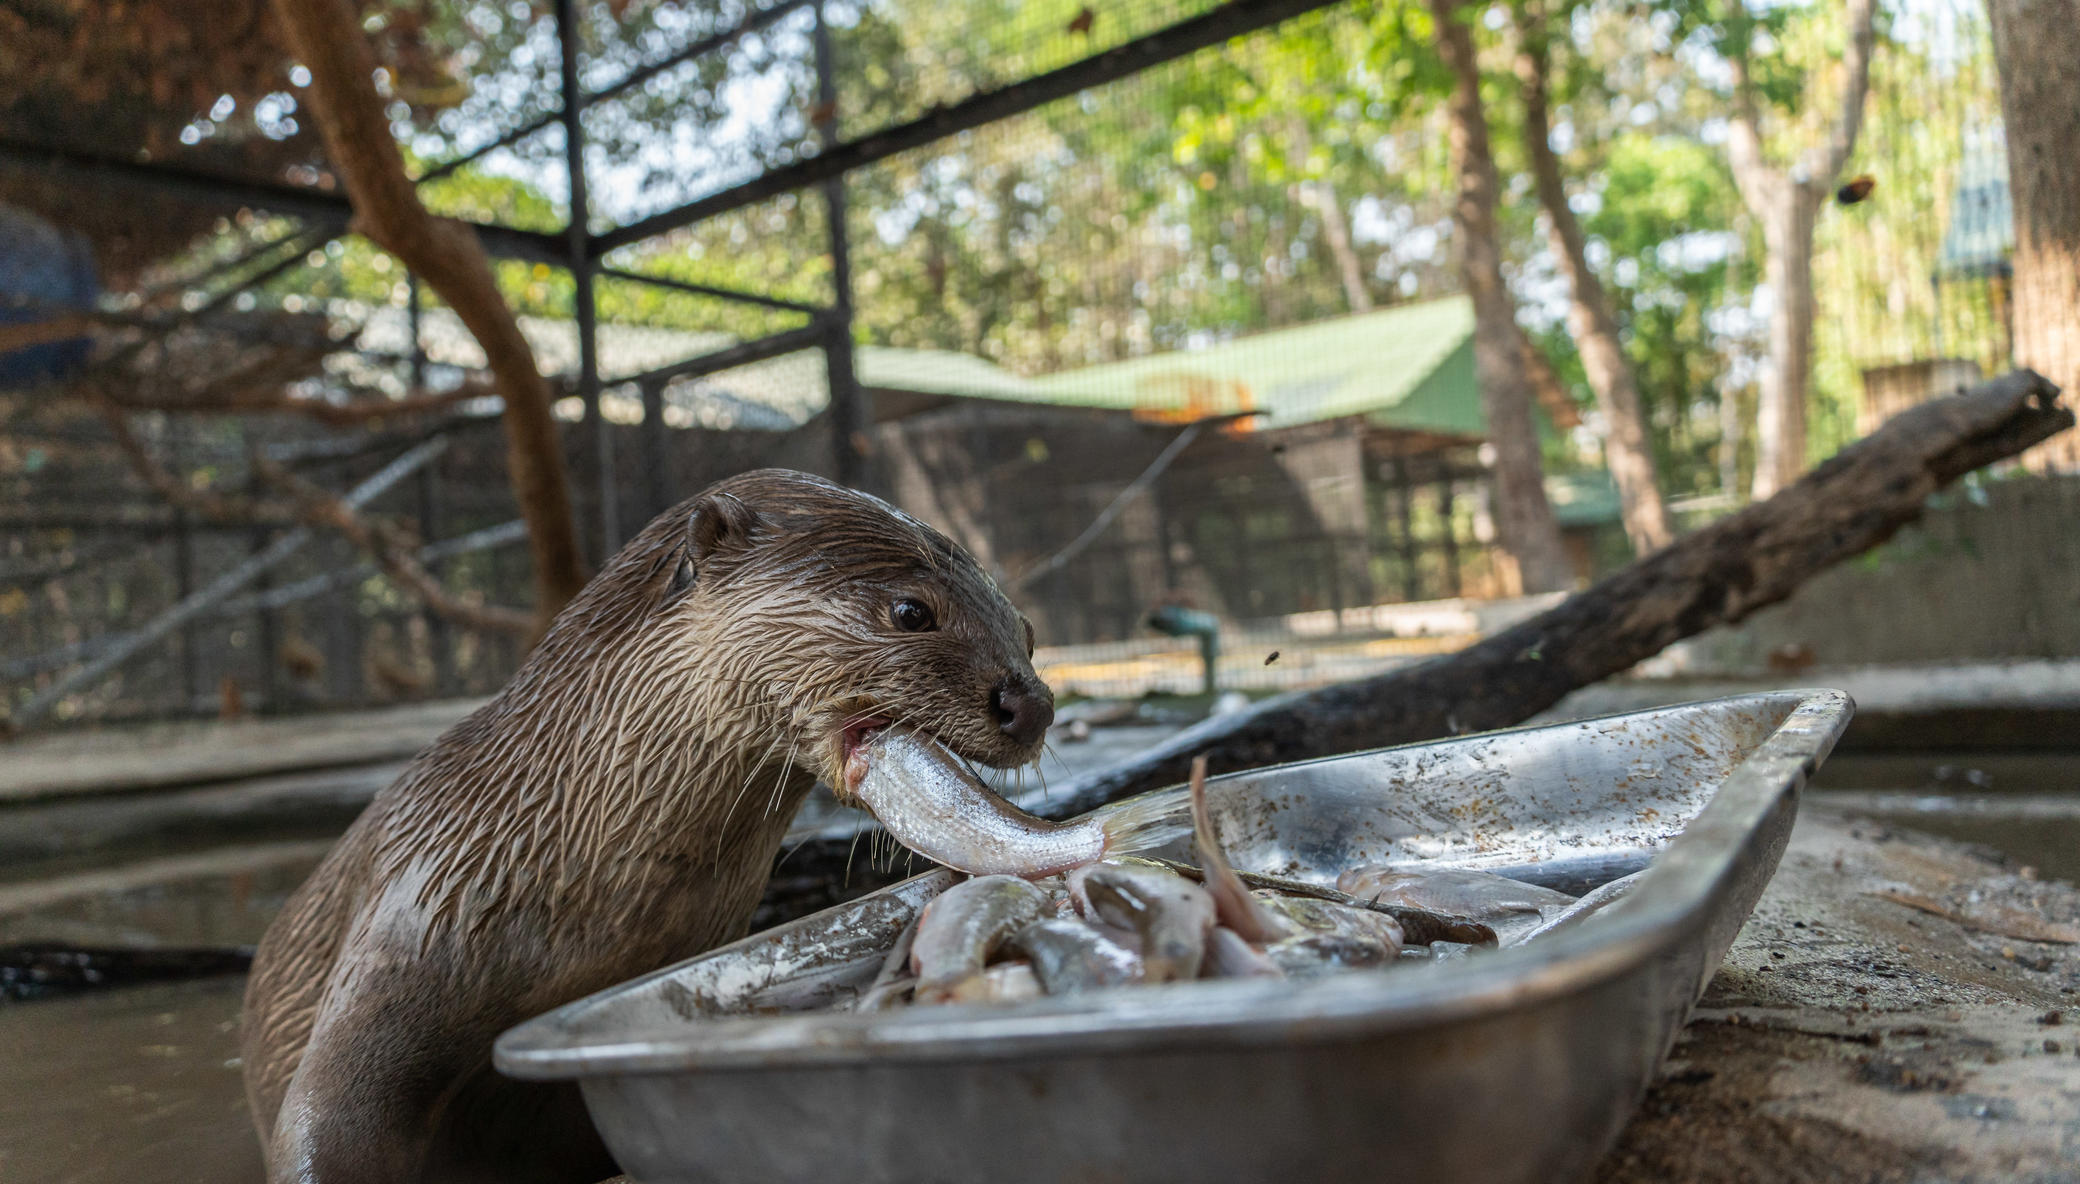 Urgent care costs for a rescued otter in Cambodia